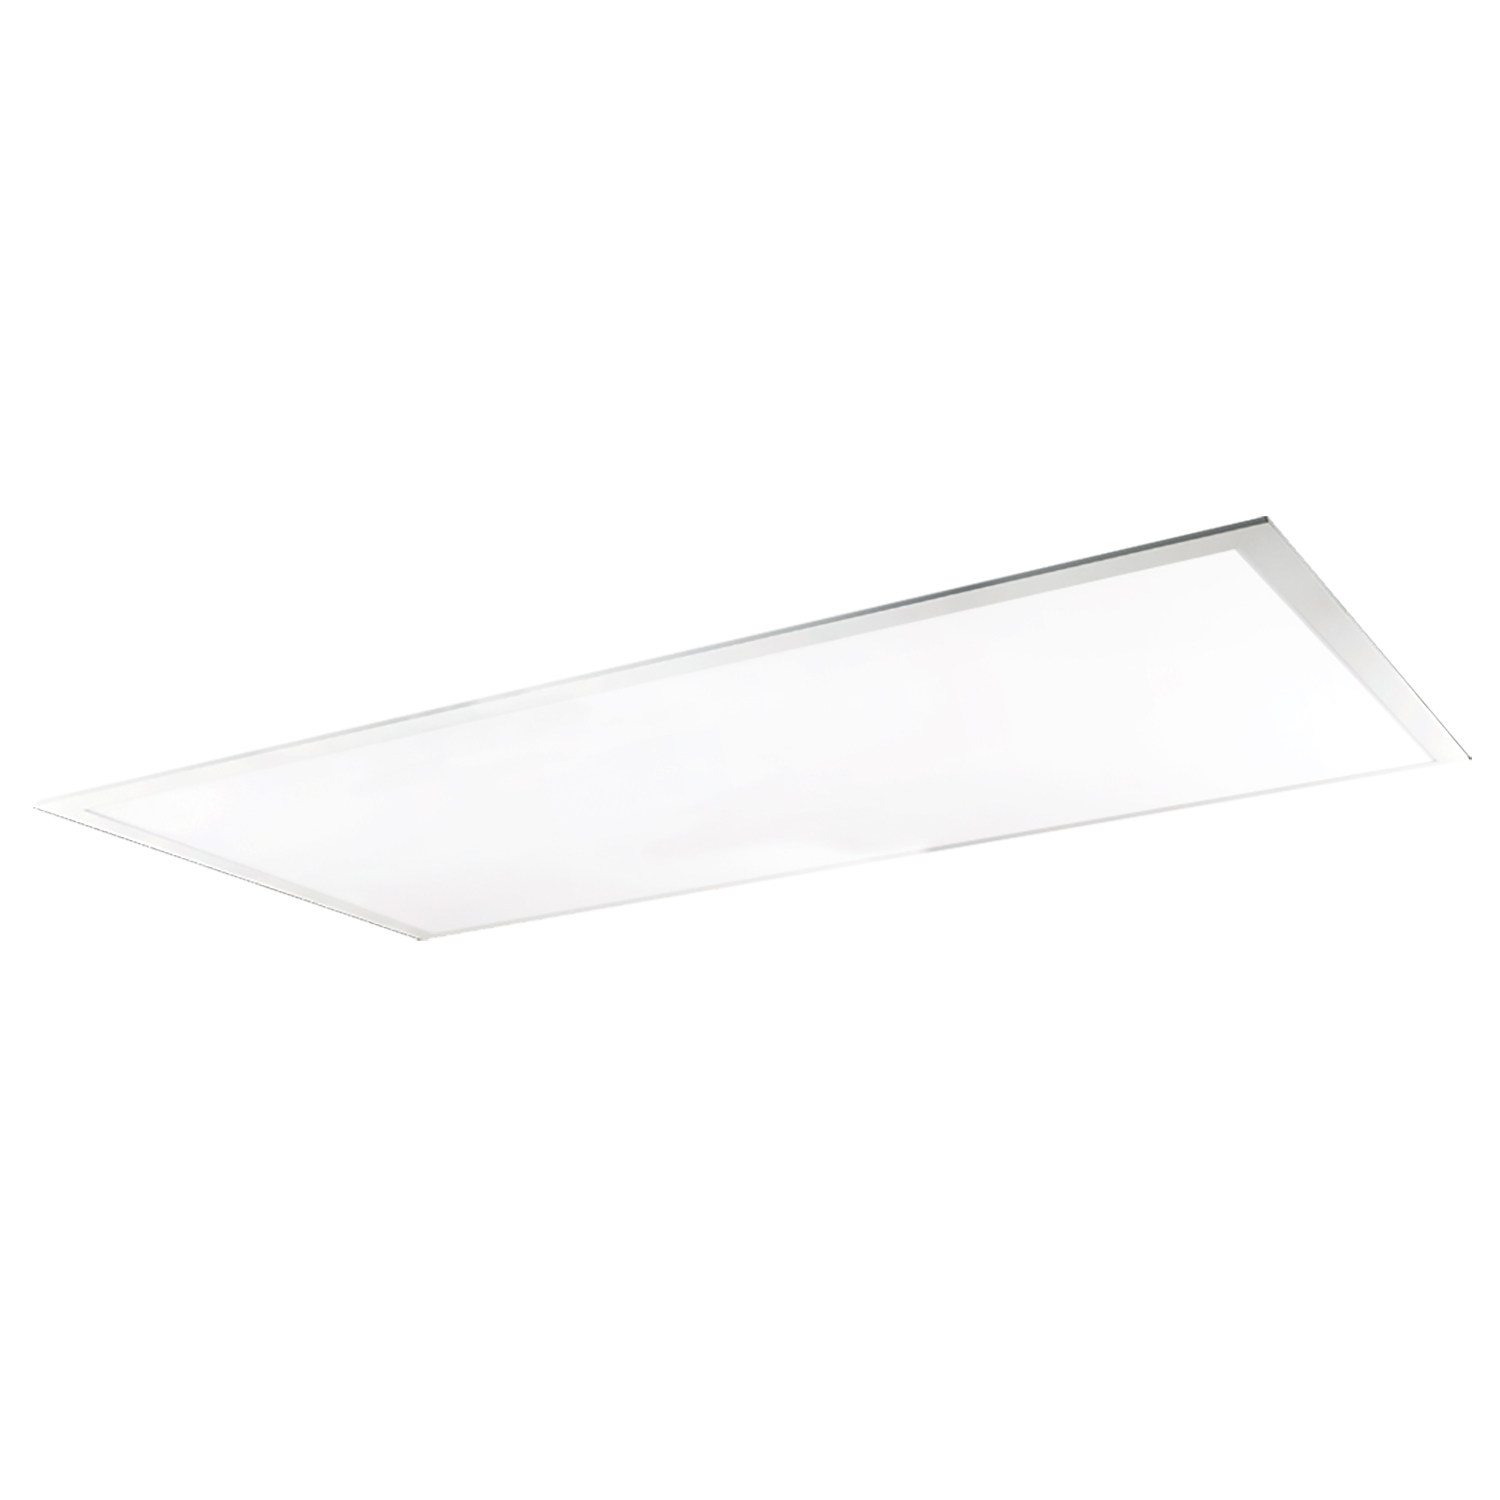 14EPL40/850/EM/LED 81990 ProLED EDGE-LIT FLAT PANEL 1X4 40W 5000K 0-10V DIMMABLE w/Battery Backup